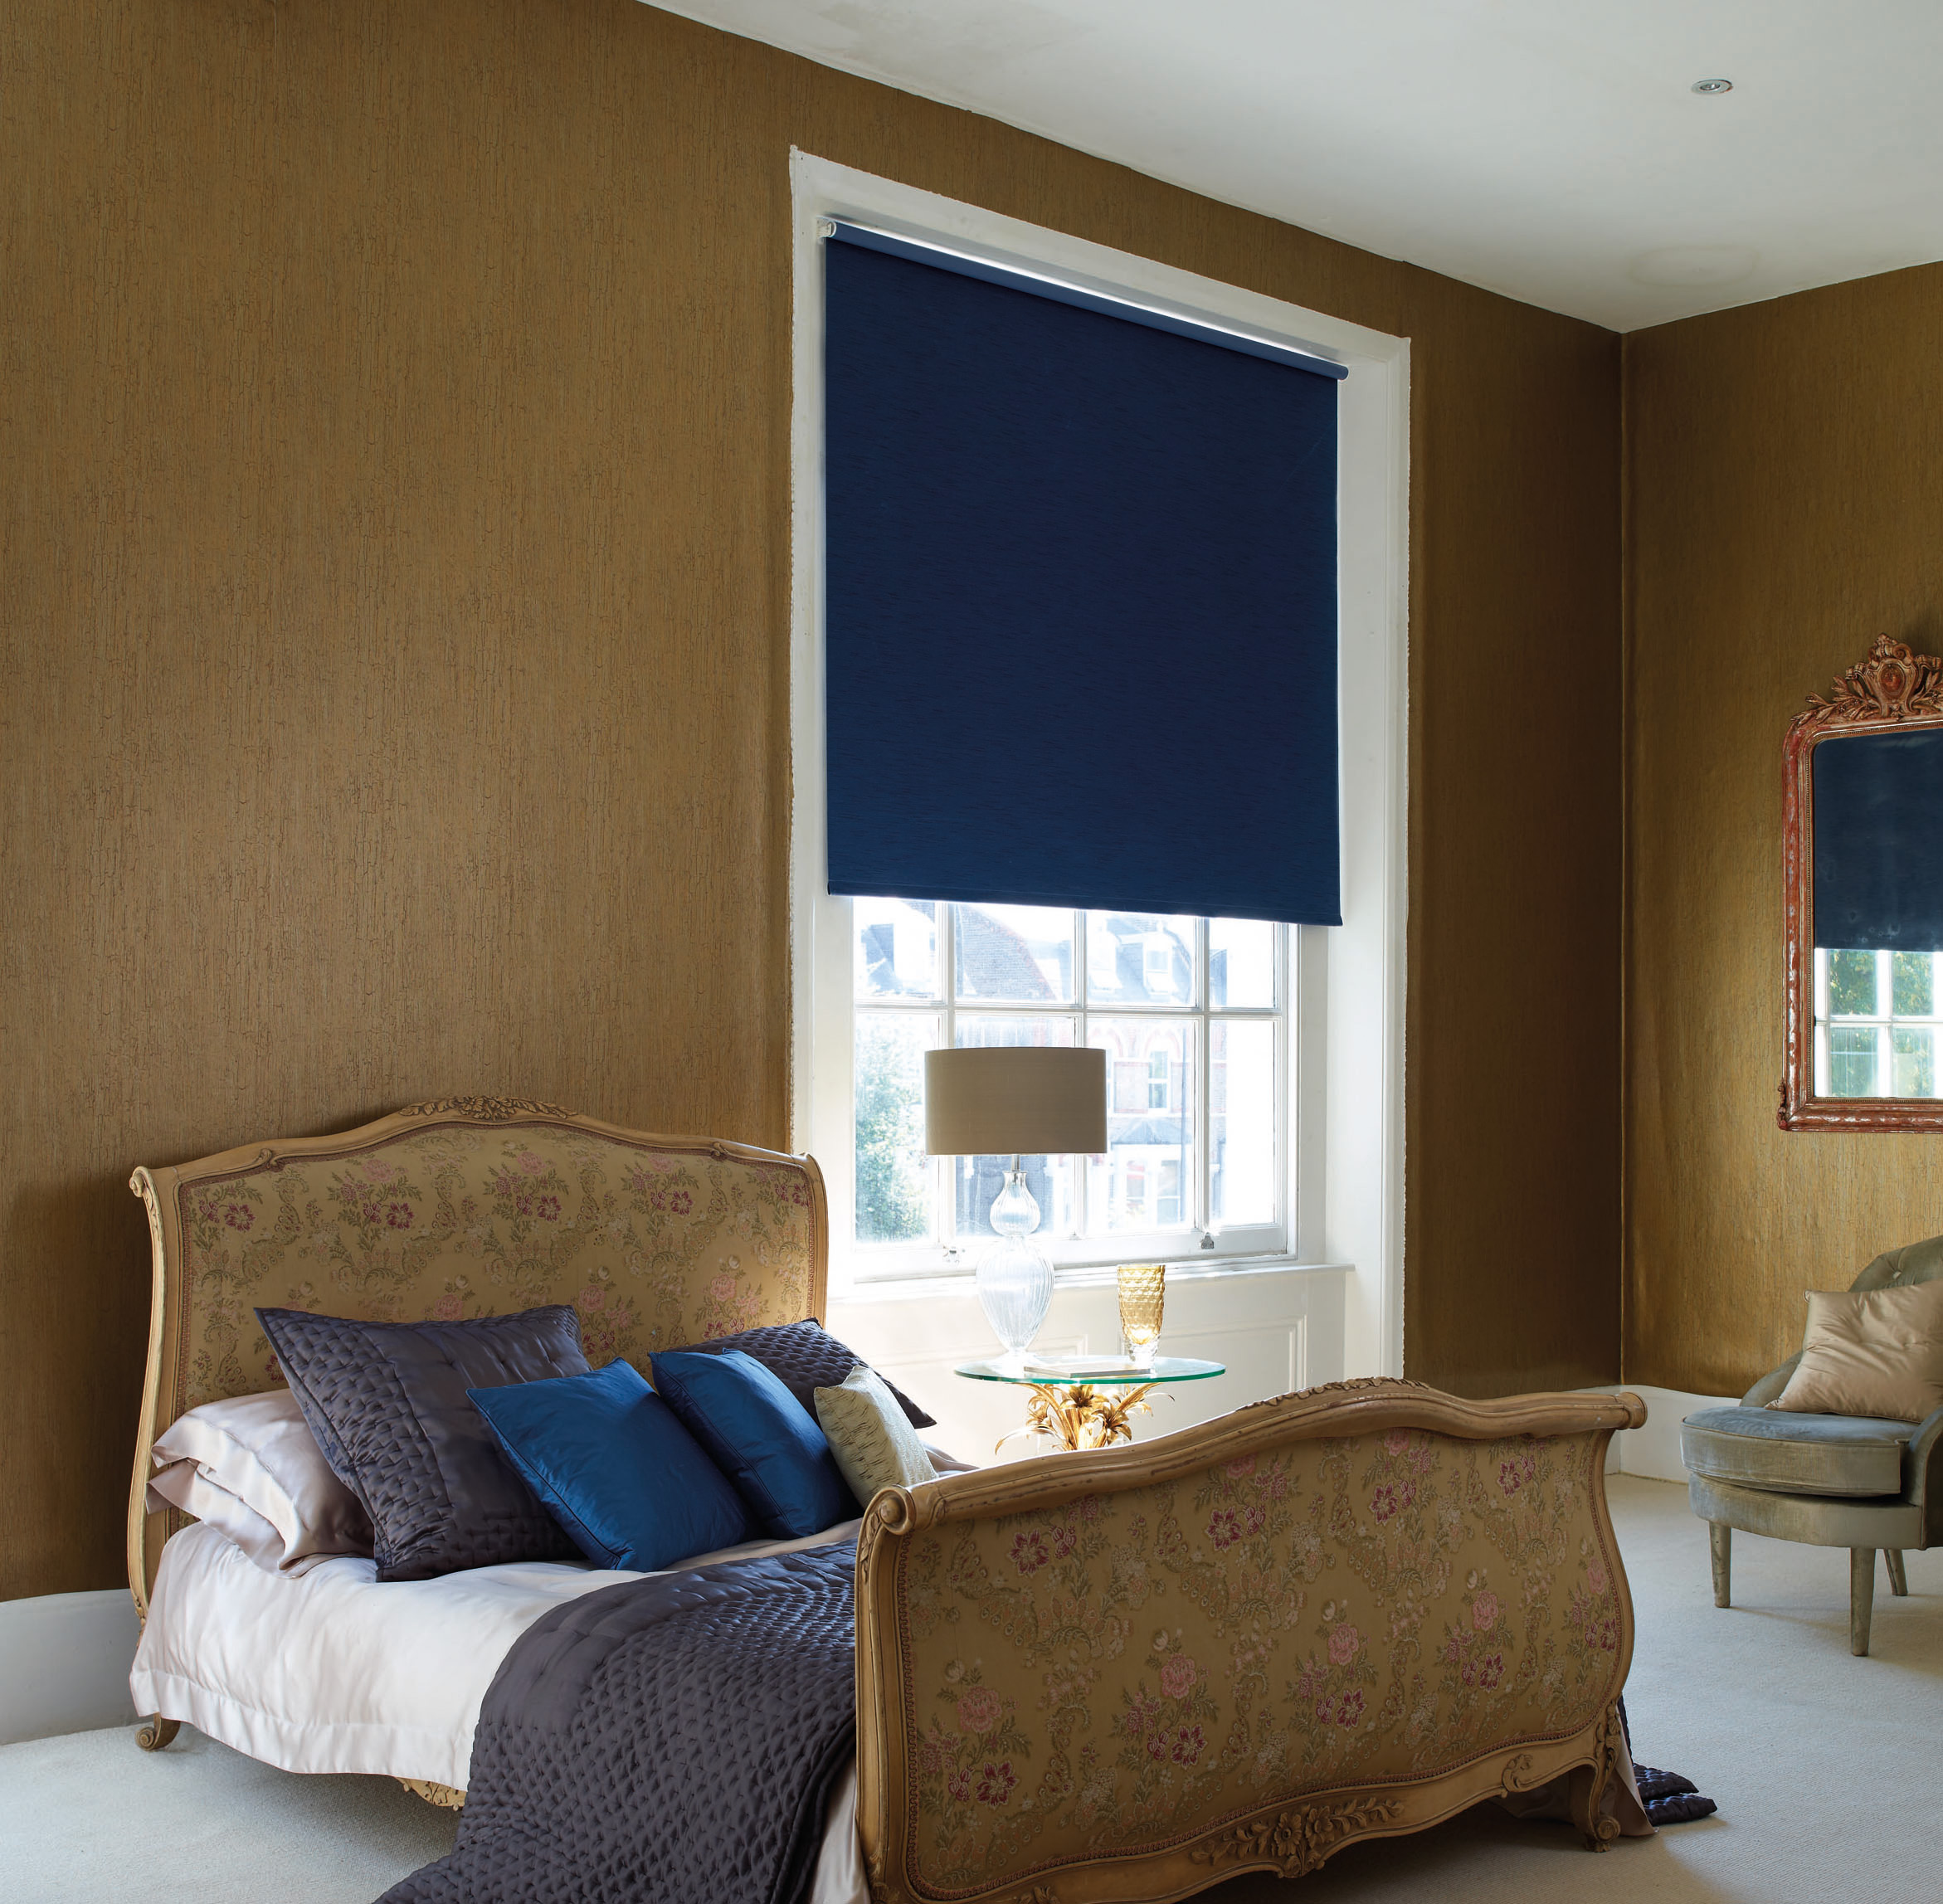 Venetian Blinds Bedroom Bedroom Colour Design Images Bedroom Ceiling Designs Images Dunelm Bedroom Chairs: Roller Blinds Leicester